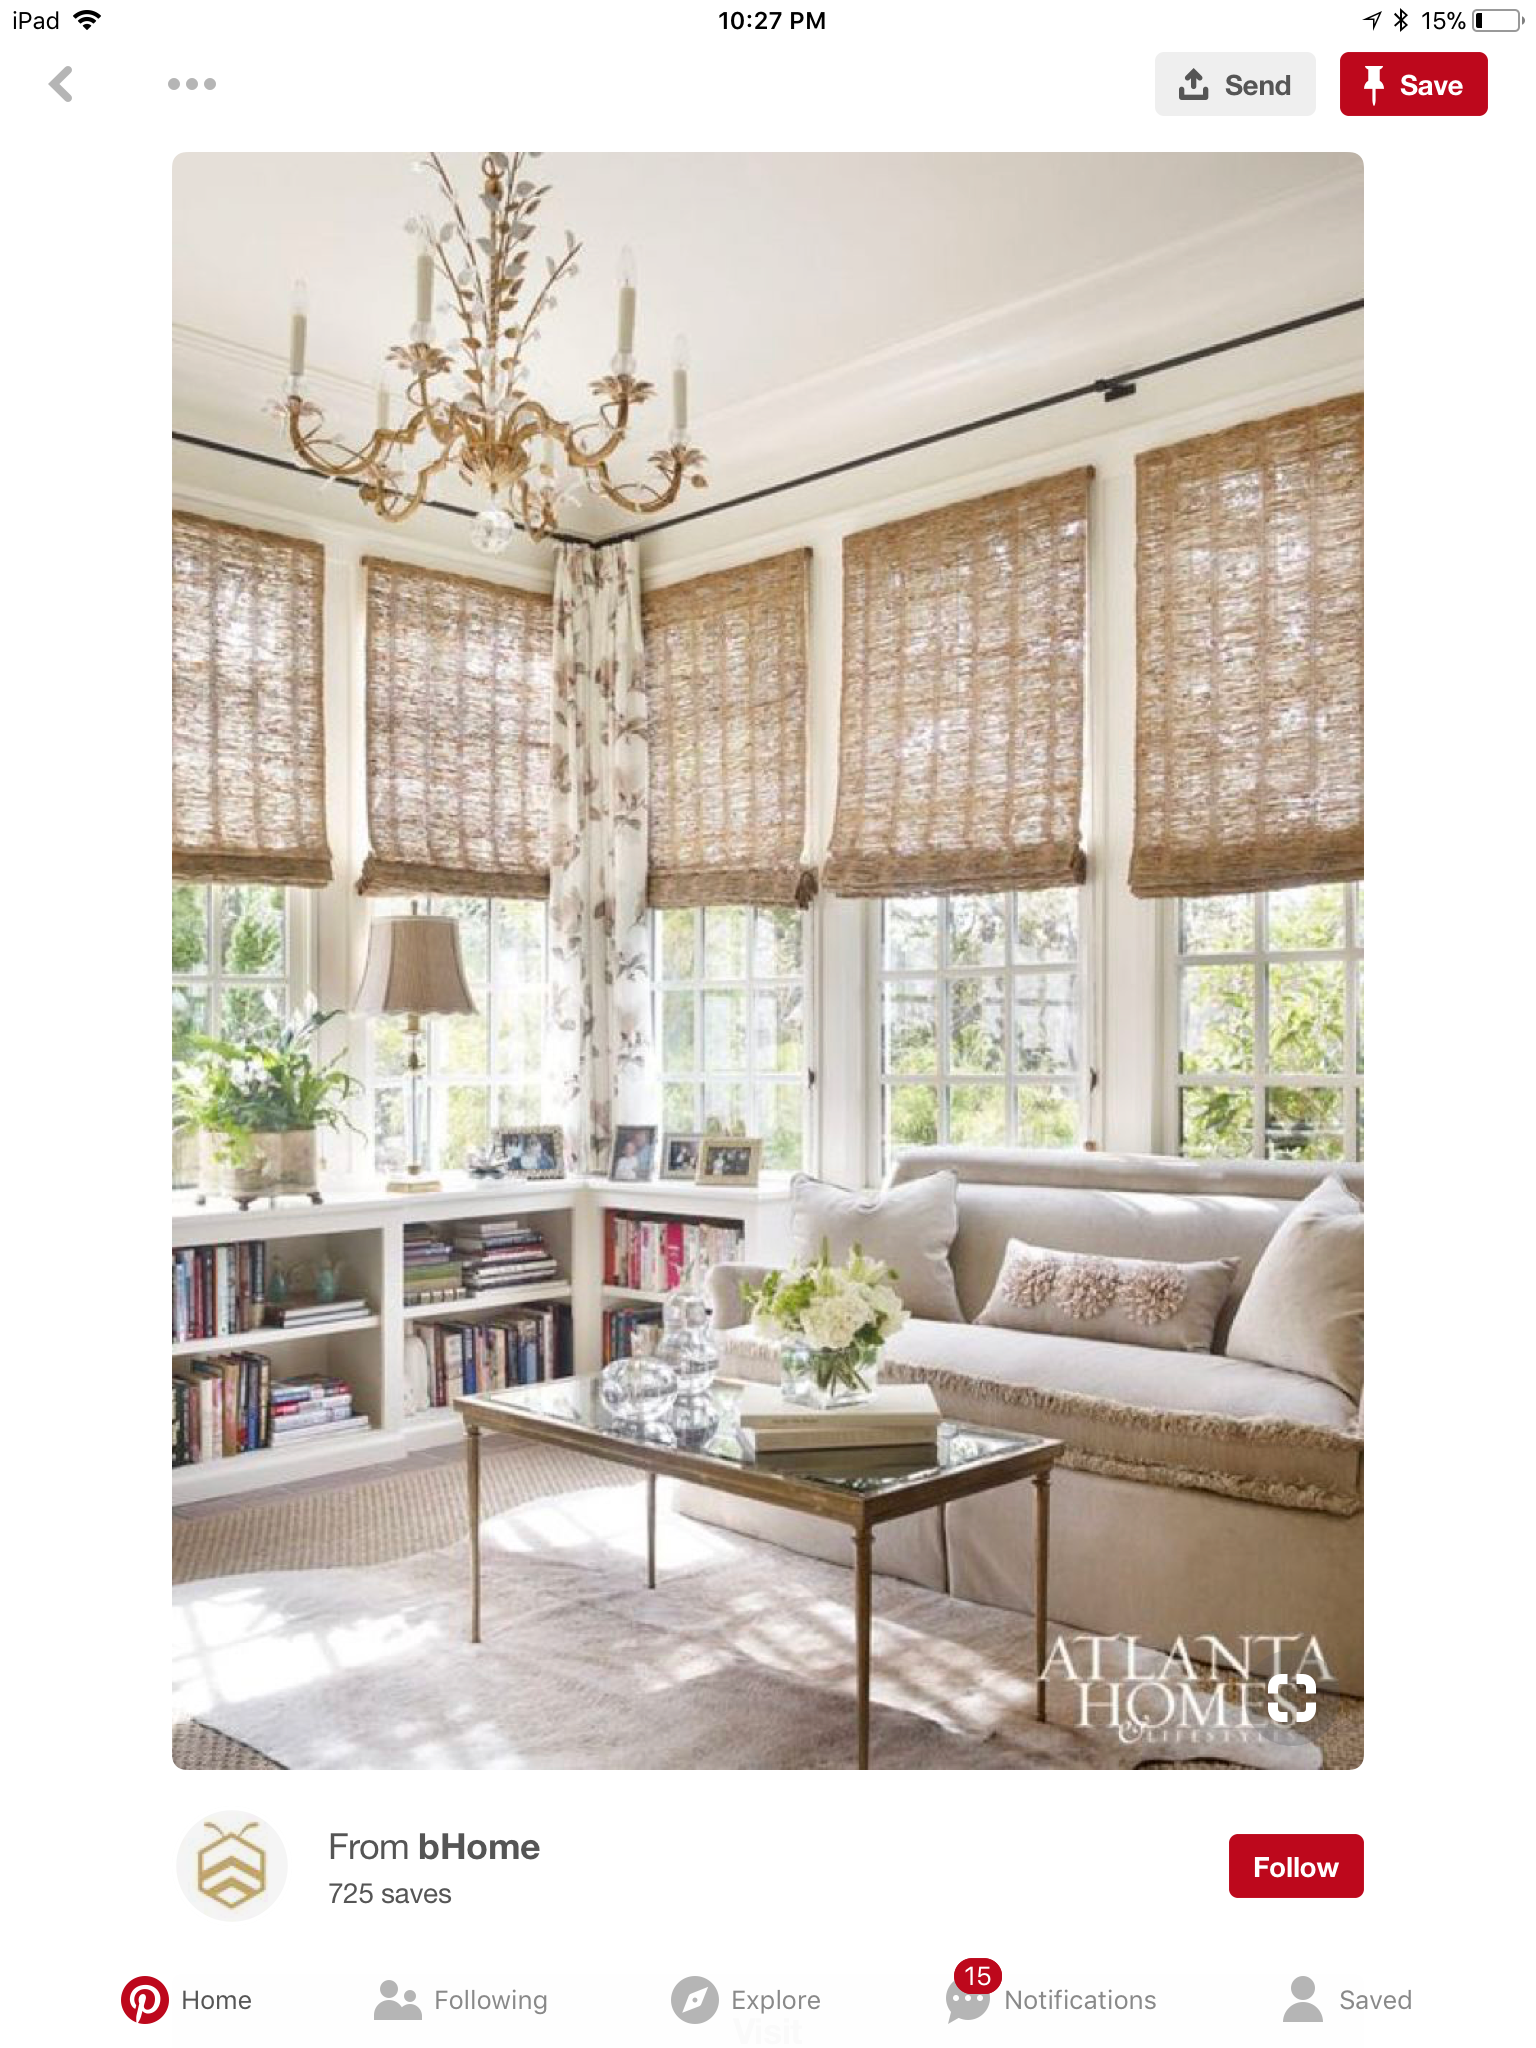 Window ideas for a sunroom  pin by tiffani fleming on home sweet home  pinterest